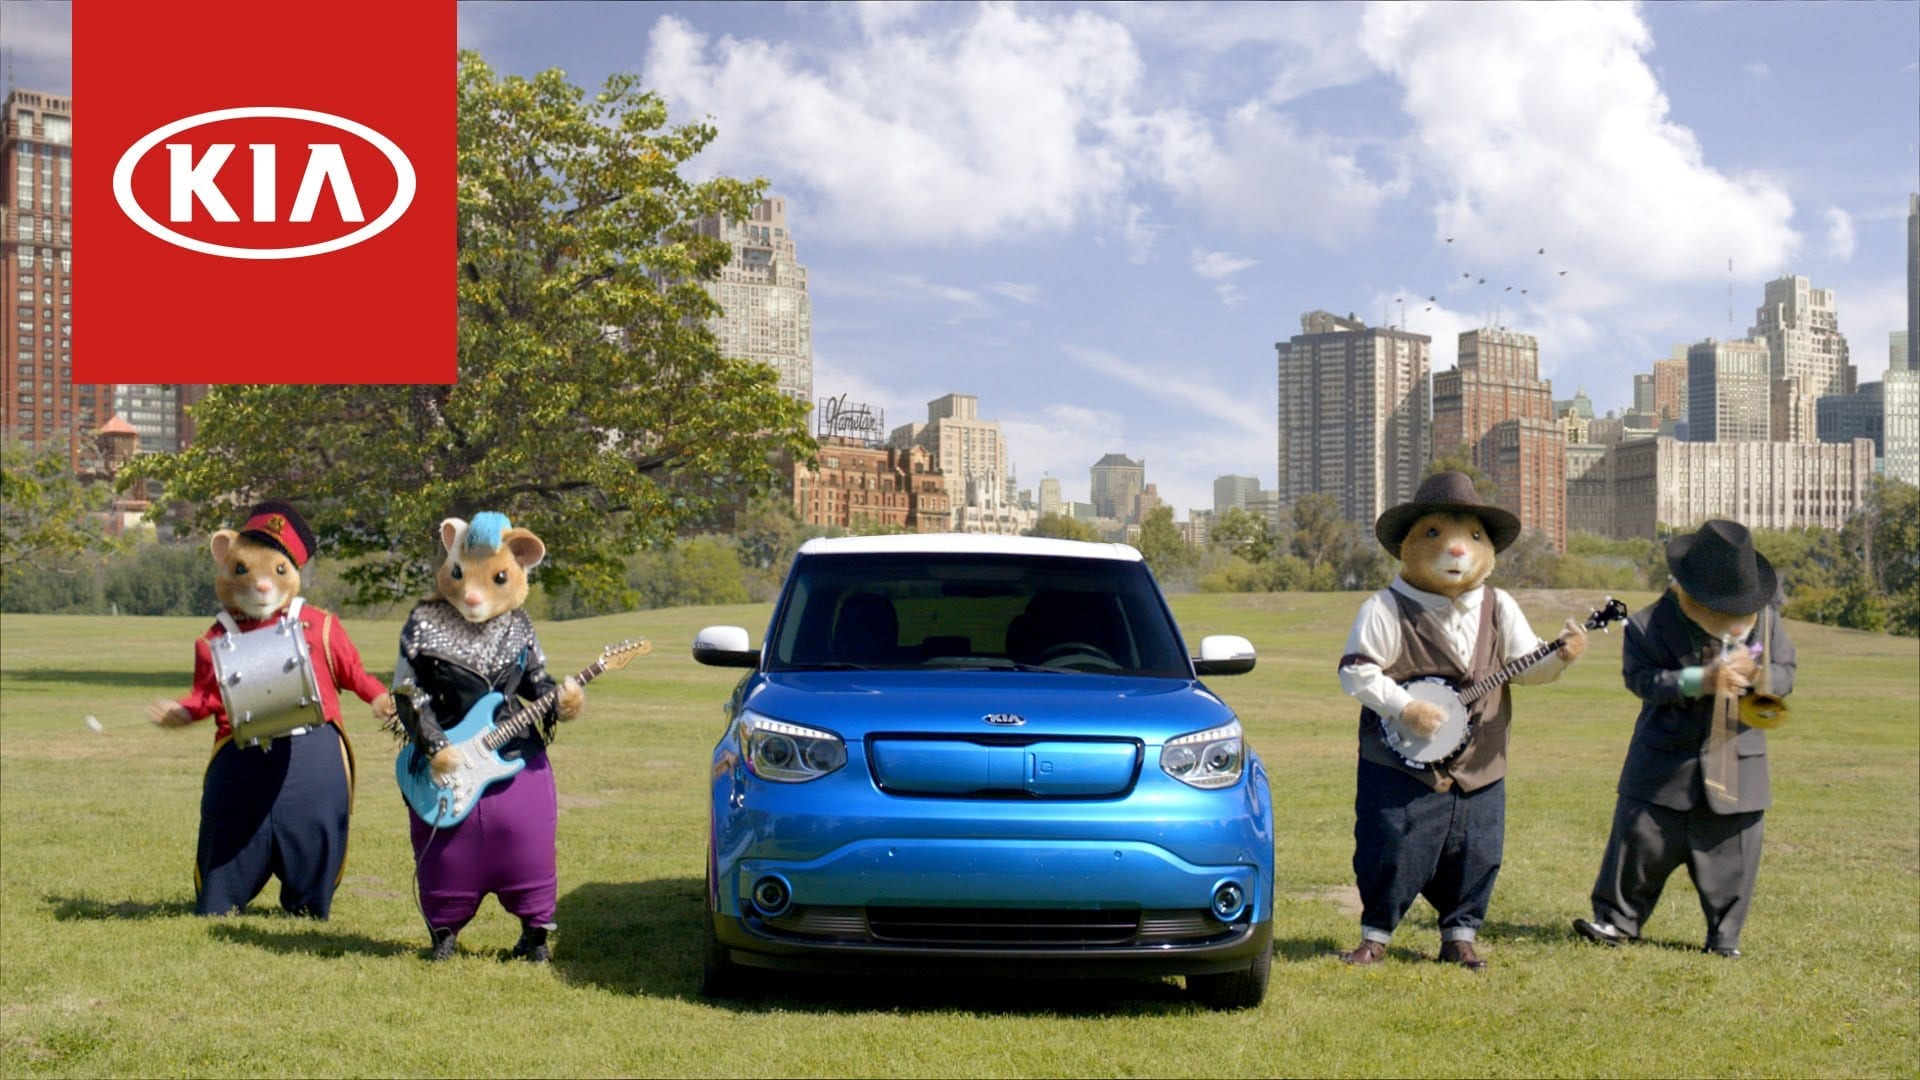 Kia: Hamsters -Share Some Soul